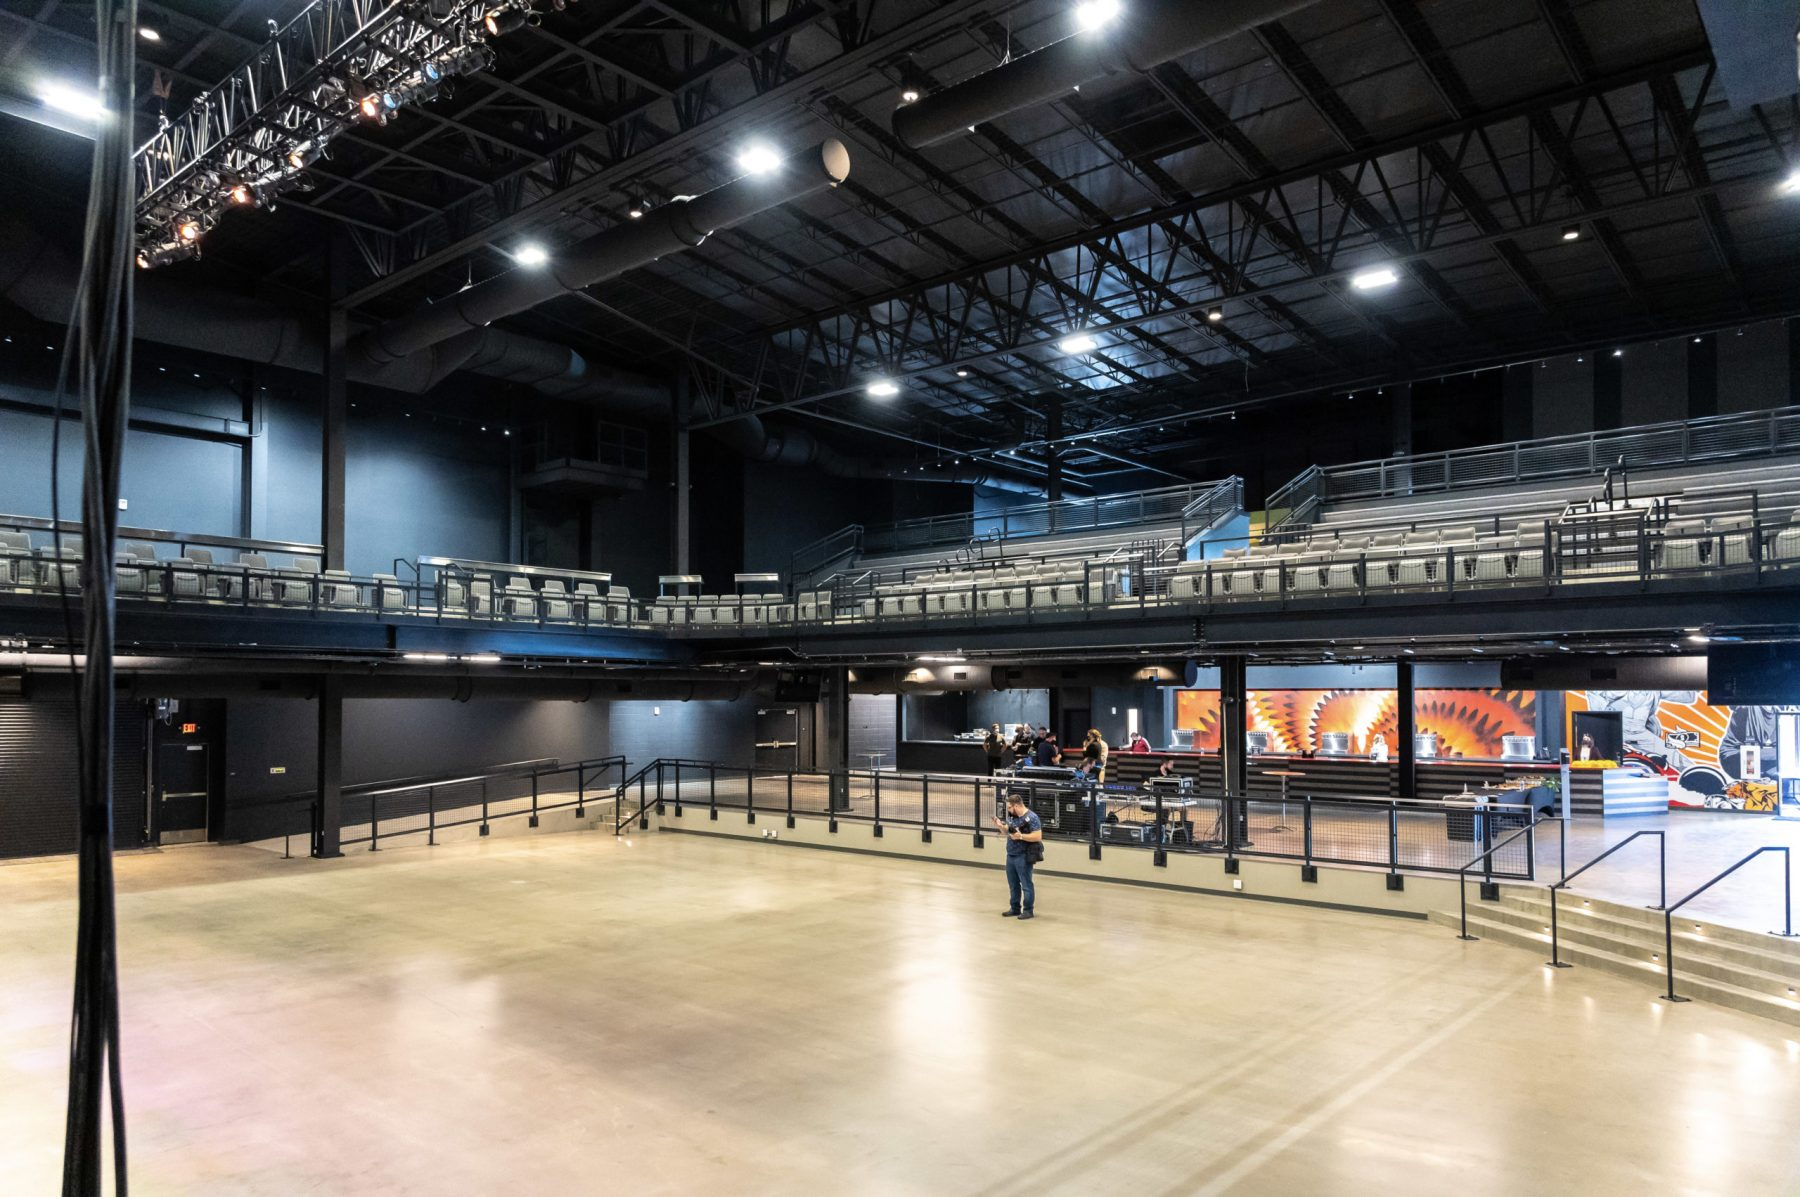 There are two levels of viewing inside the venue. The upper level features permanent seats. Photo by Phil Armstrong.